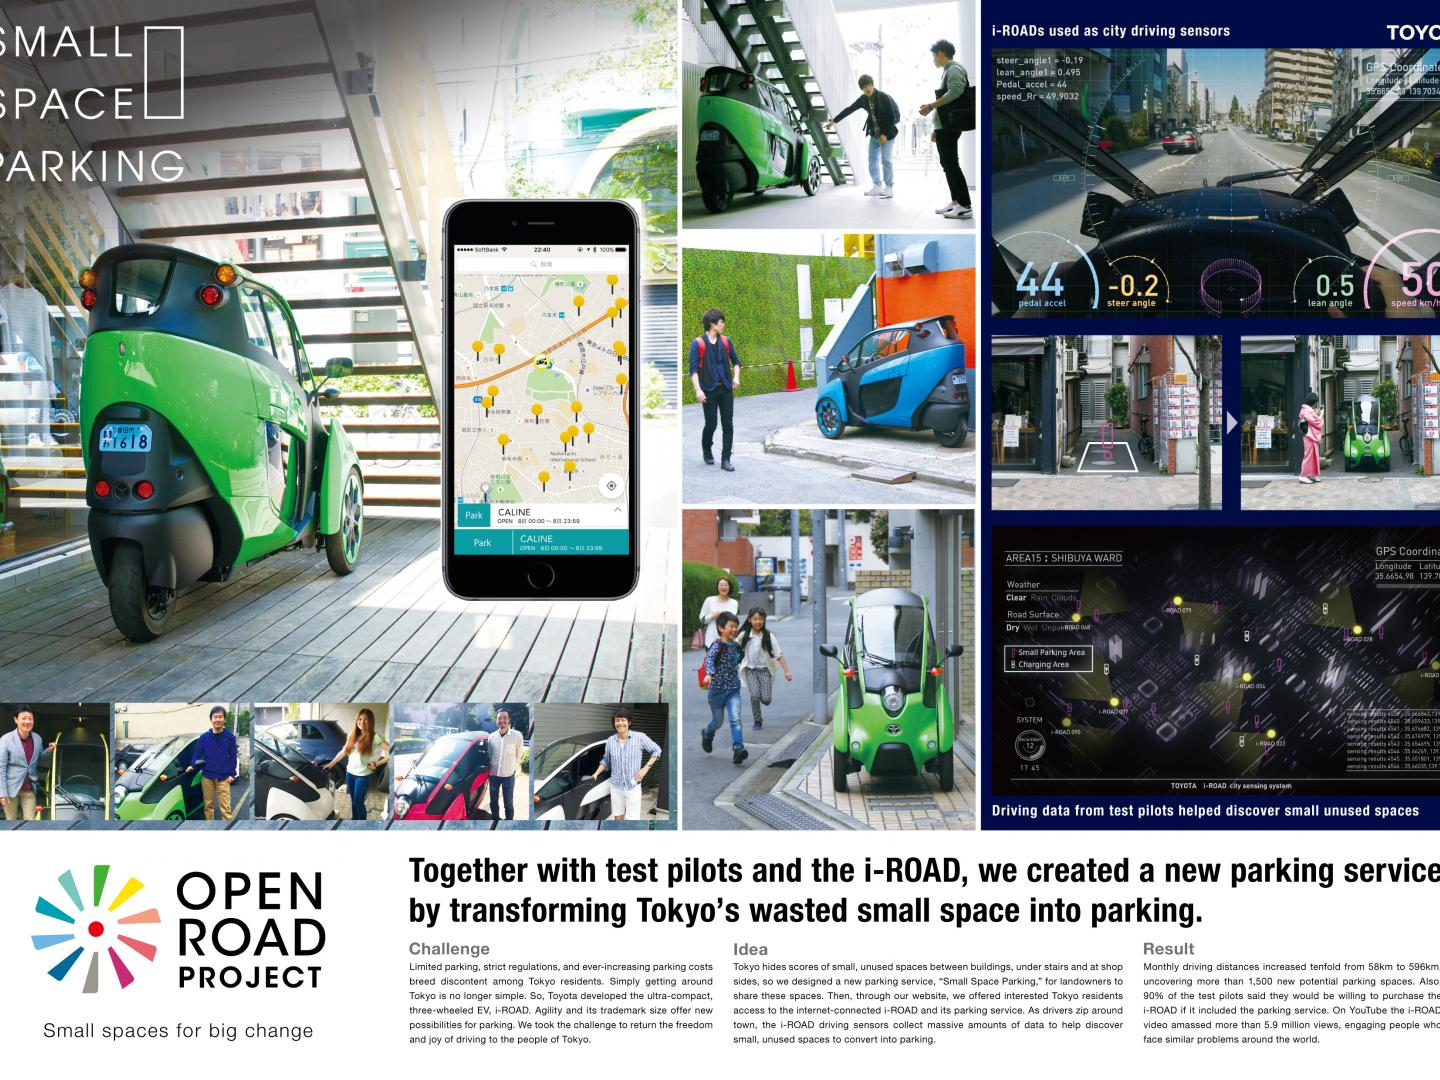 OPEN ROAD PROJECT Thumbnail